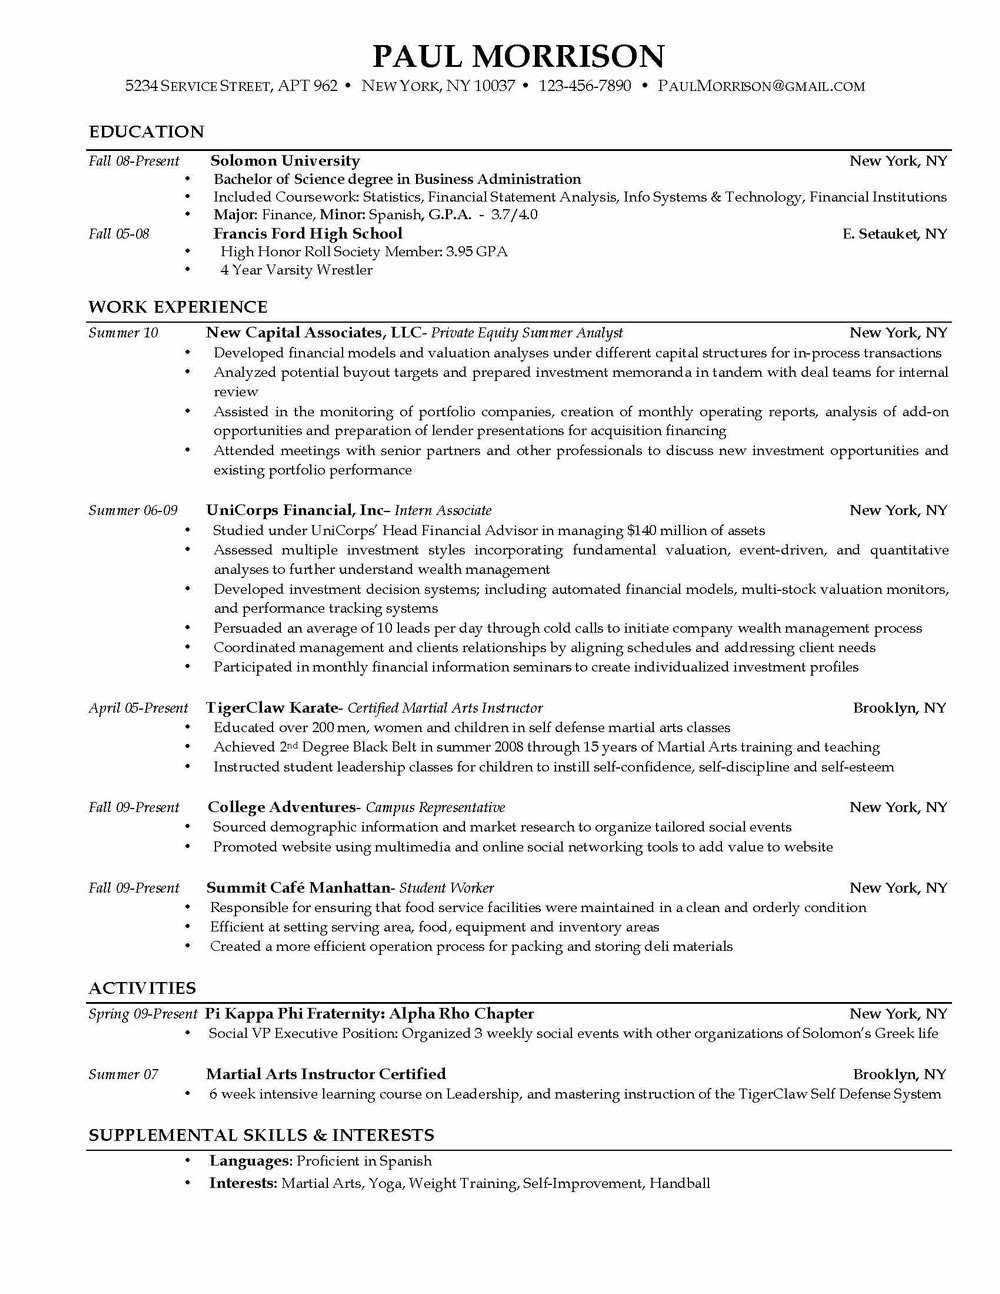 How Do I Find Resume Templates On Microsoft Word 2007